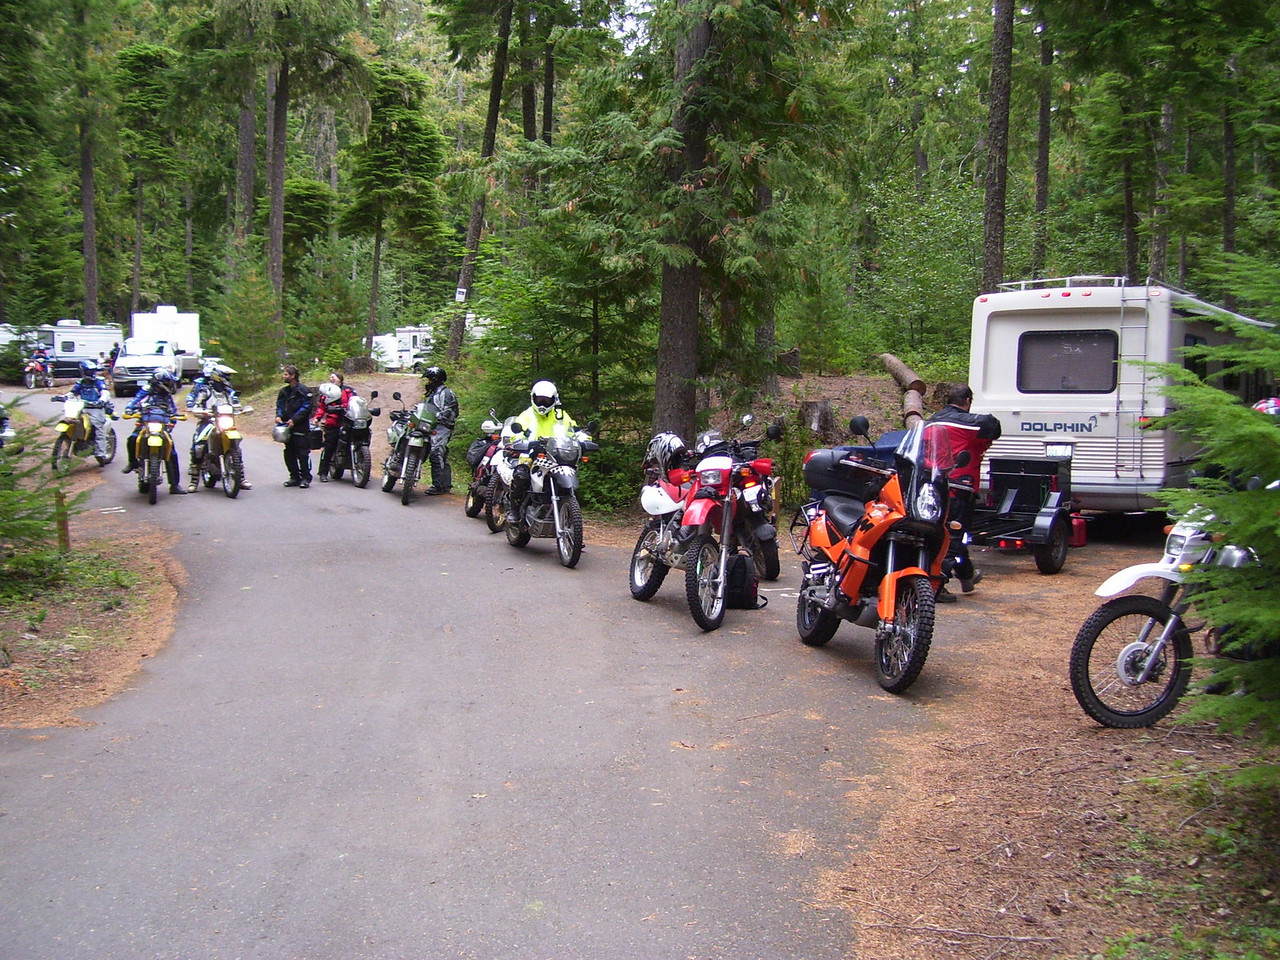 Friday Morning and the starting line up for our first Adventure ride to Mt St Helens via 7807, 22, Randle and the 26 road.